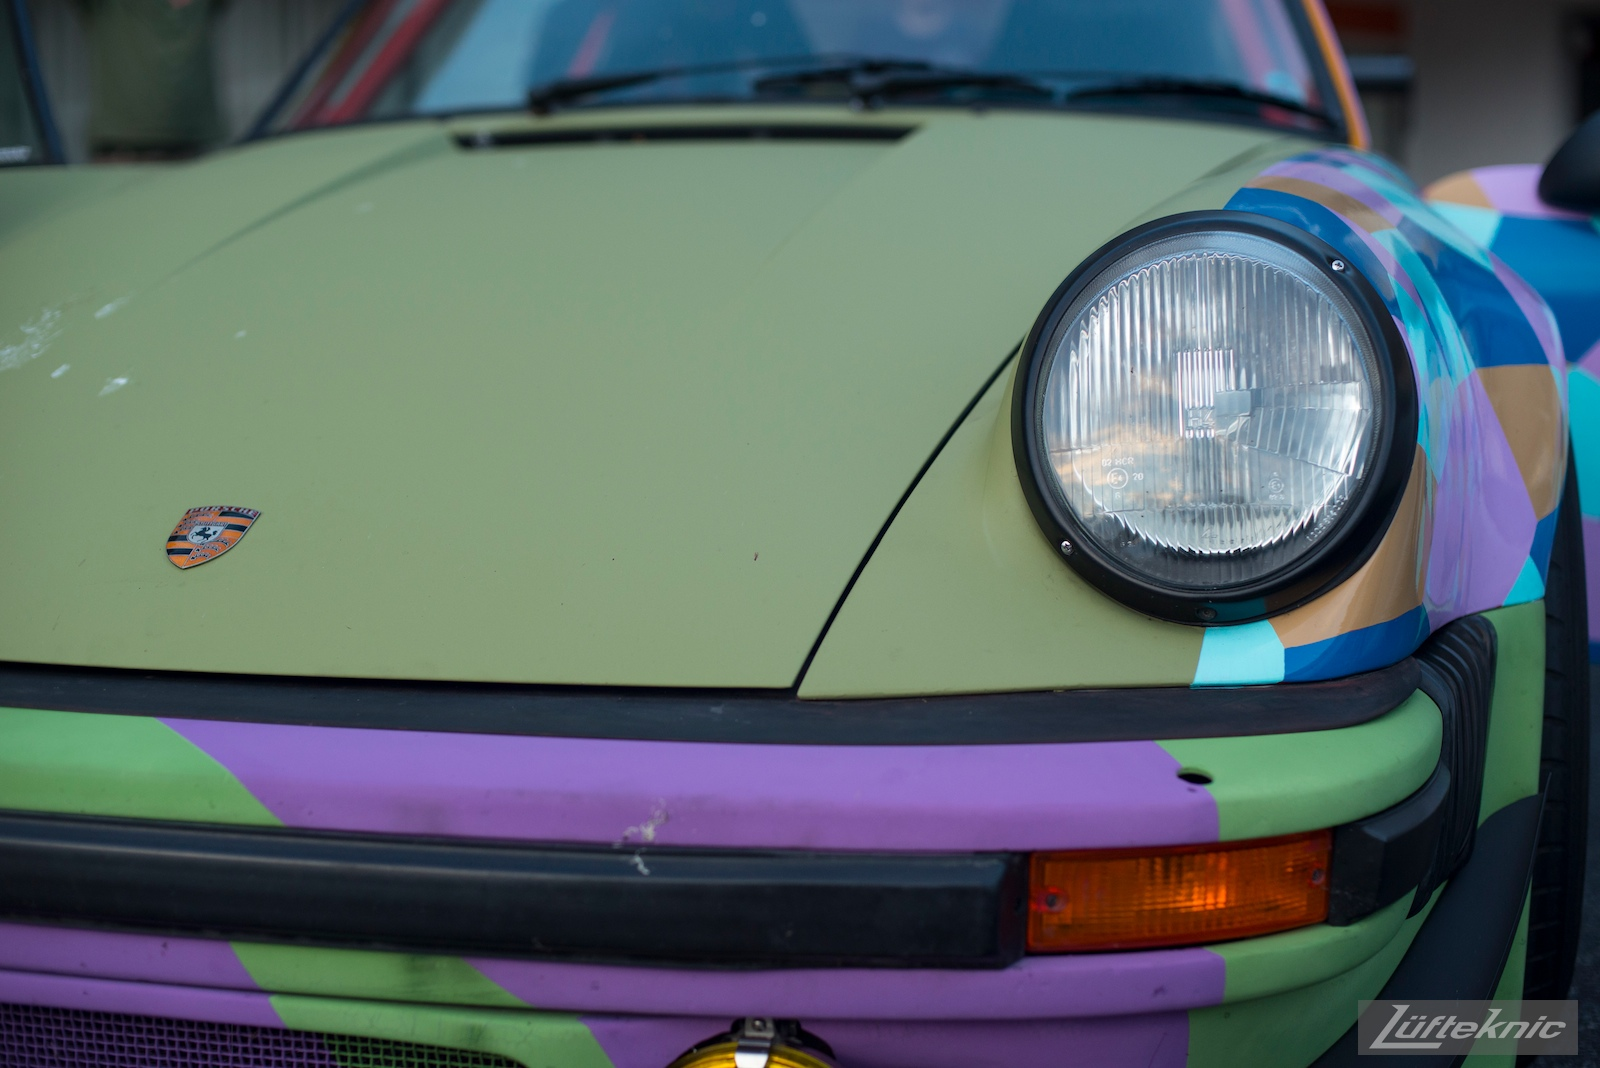 Lüfteknic #projectstuka Porsche 930 Turbo front end close up